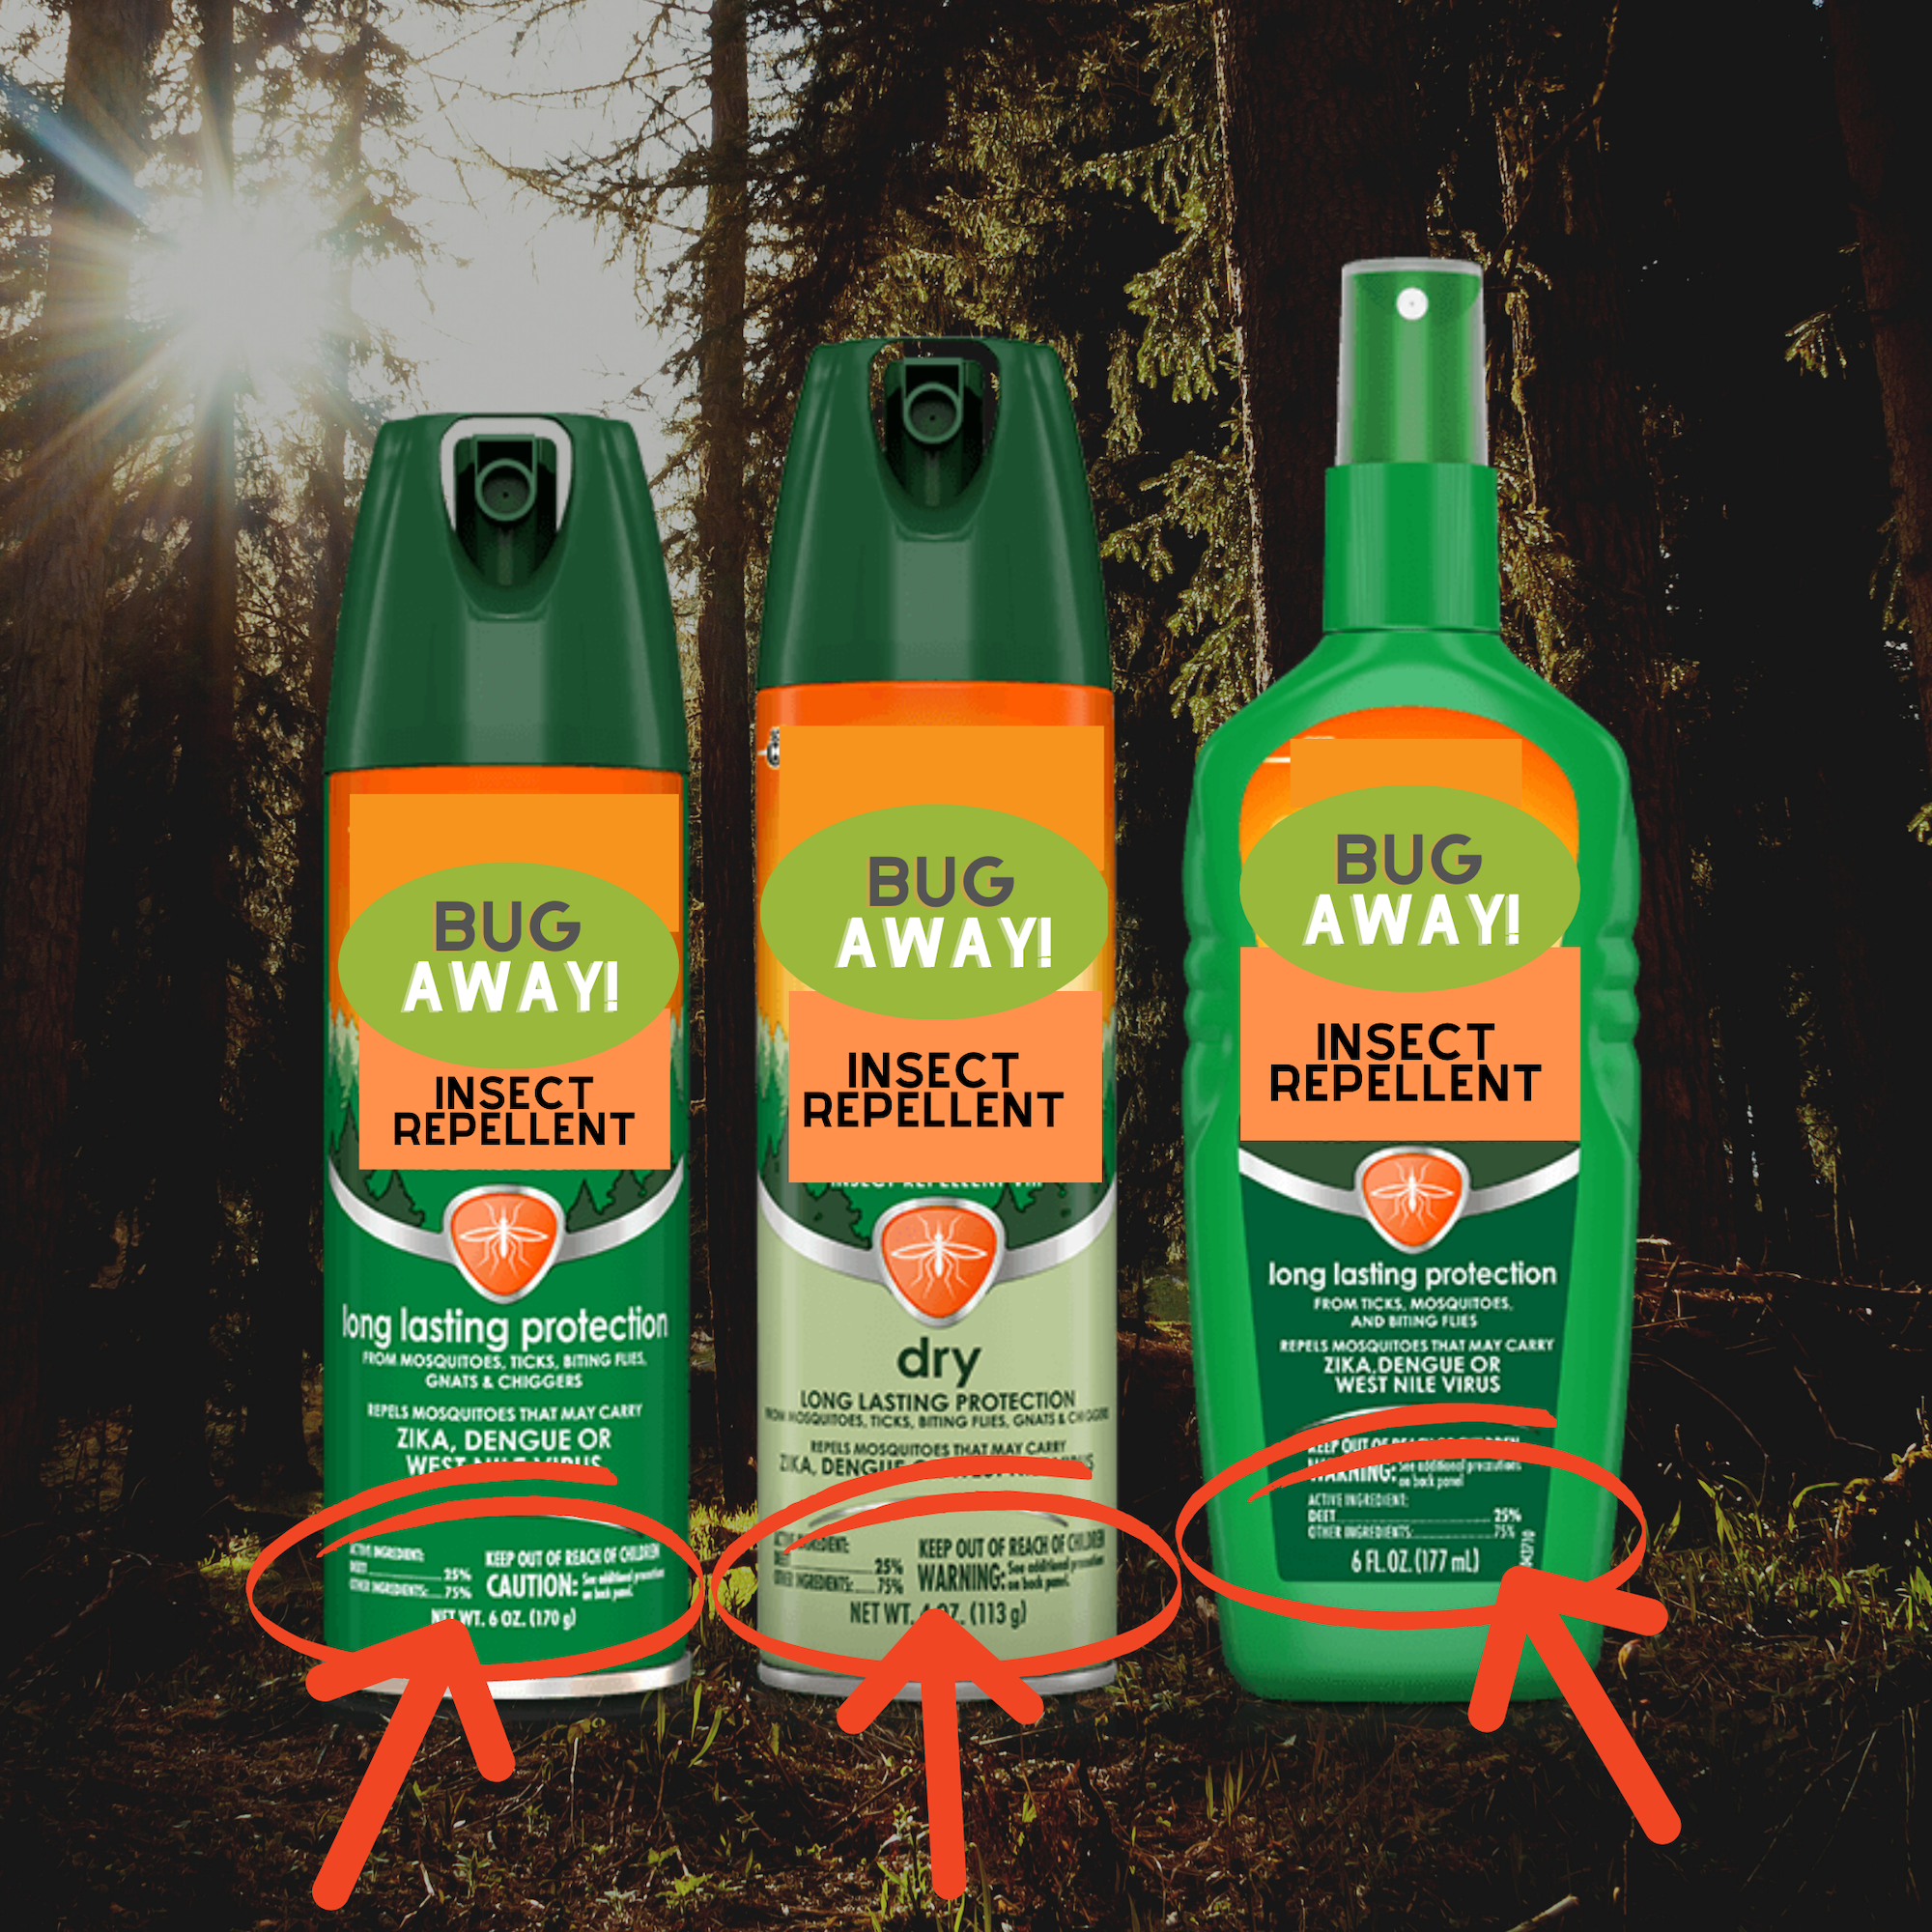 image showing that the percentage of active ingredient in repellent is usually on the bottom front of the bottle